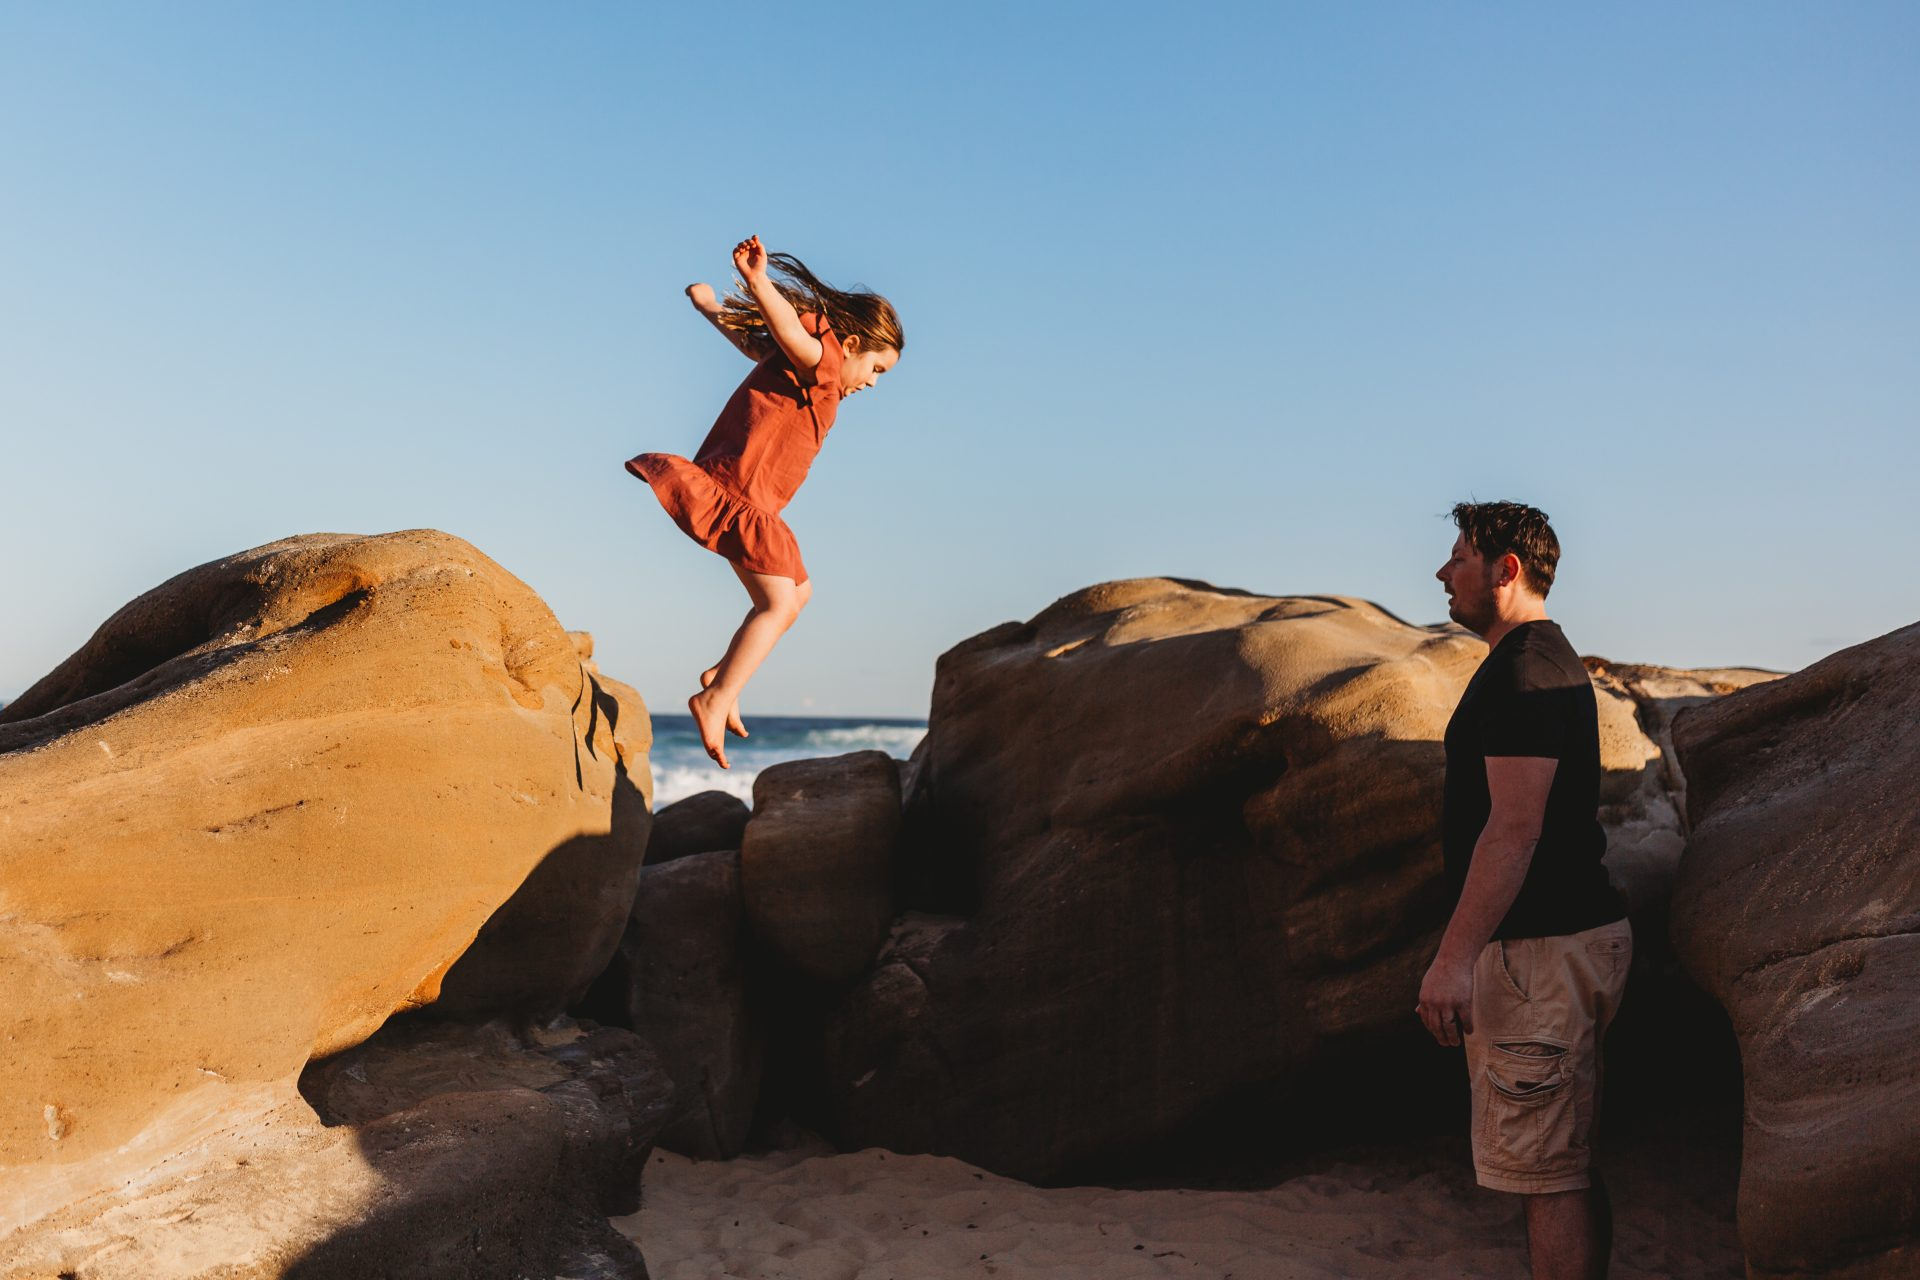 Little girl jumping off a rock to her father